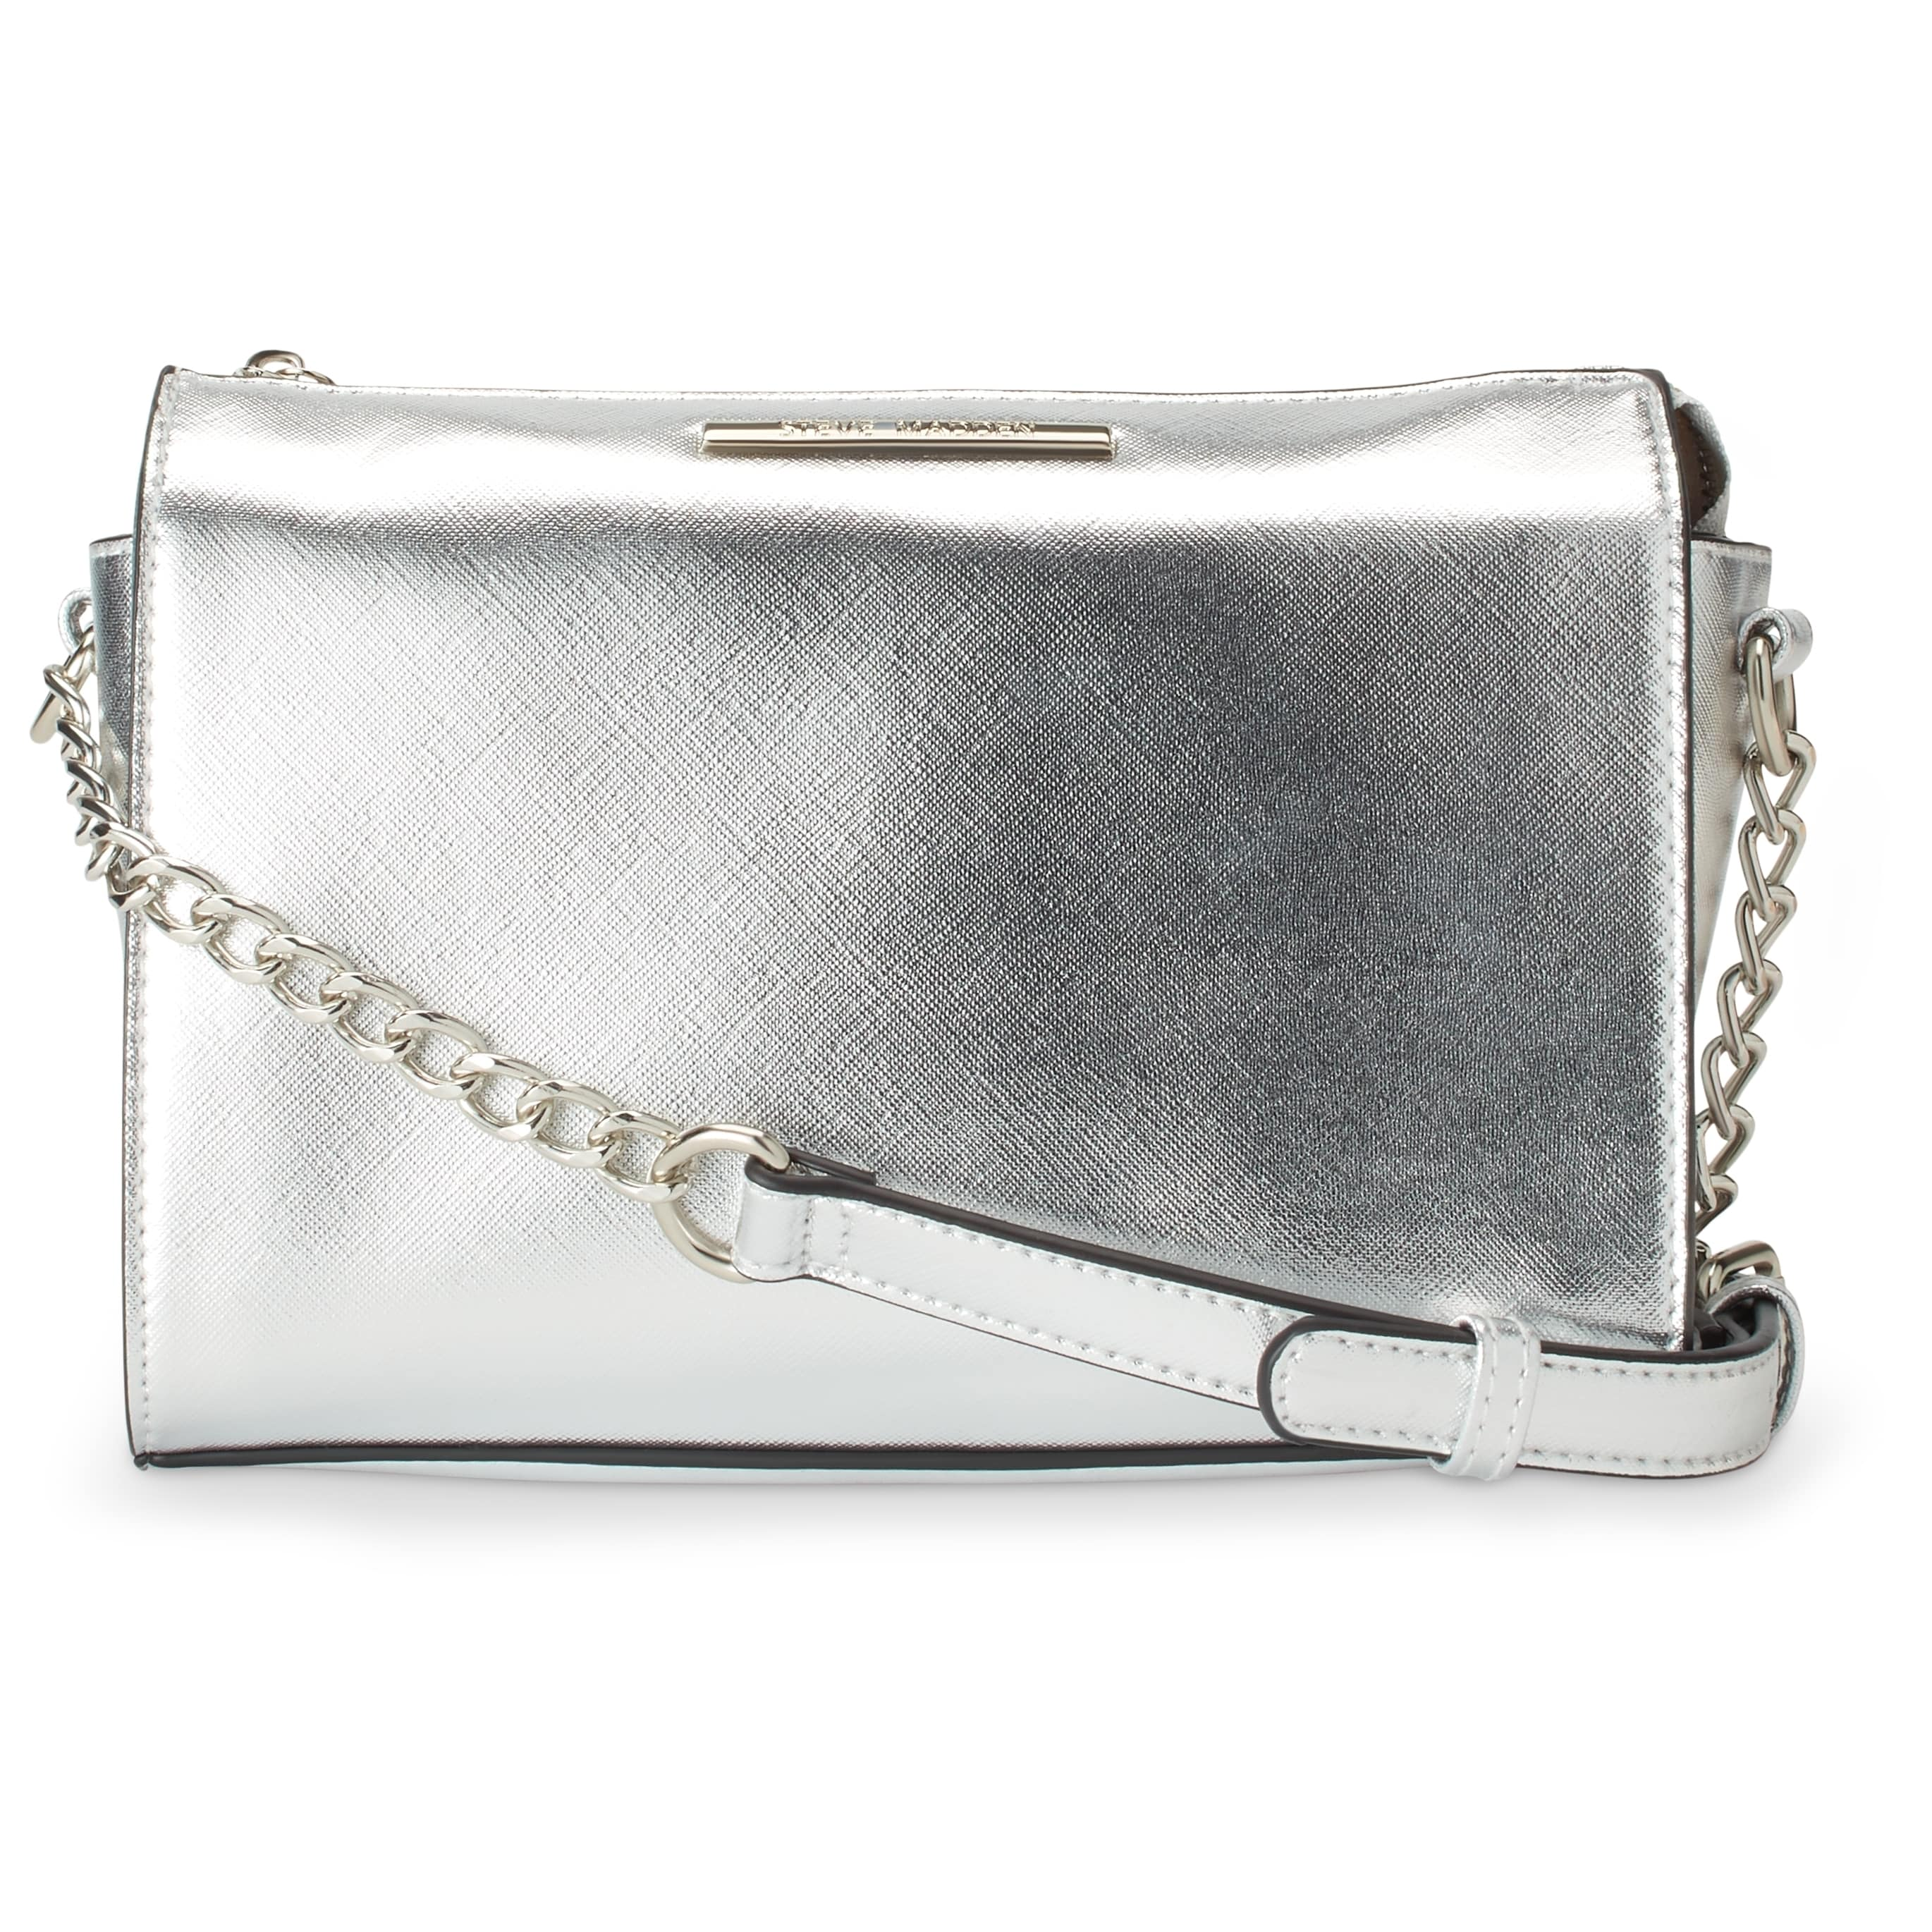 60700d51f5 Shop Steve Madden BLexi Faux Leather Crossbody Handbag - Free Shipping On  Orders Over  45 - Overstock - 18000670